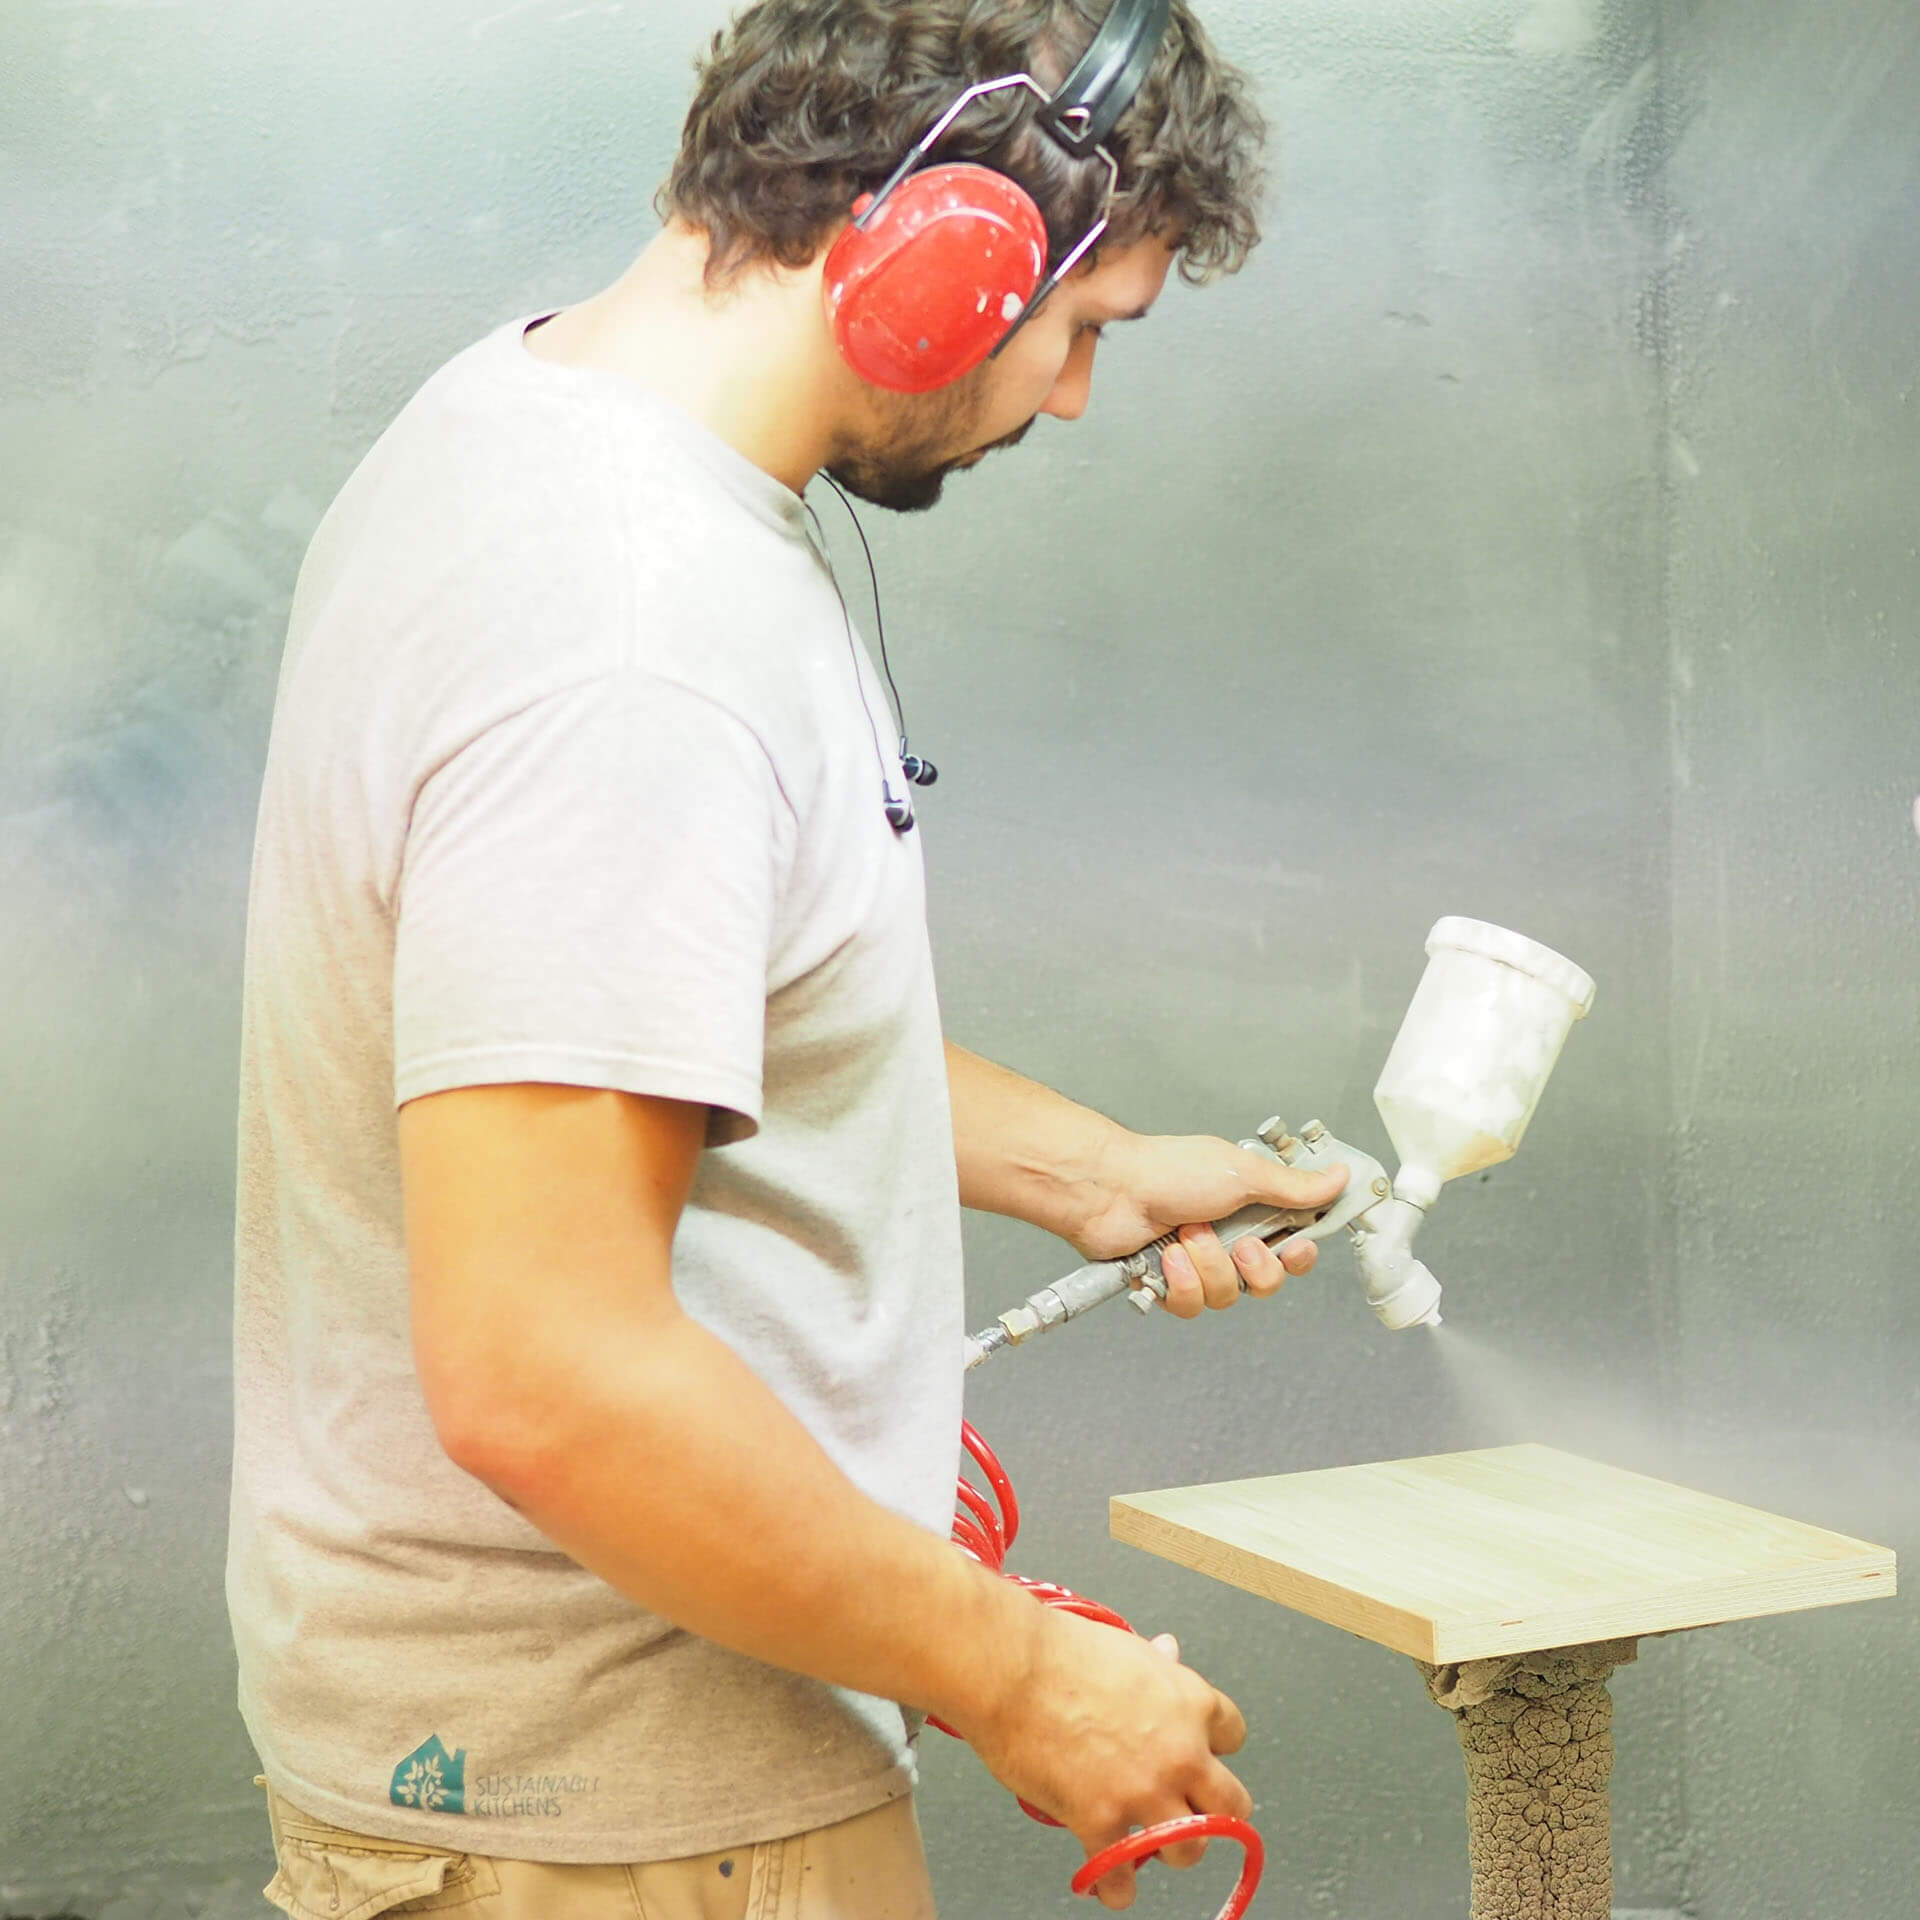 Connor Andrews in the spraybooth july 2018 cropped